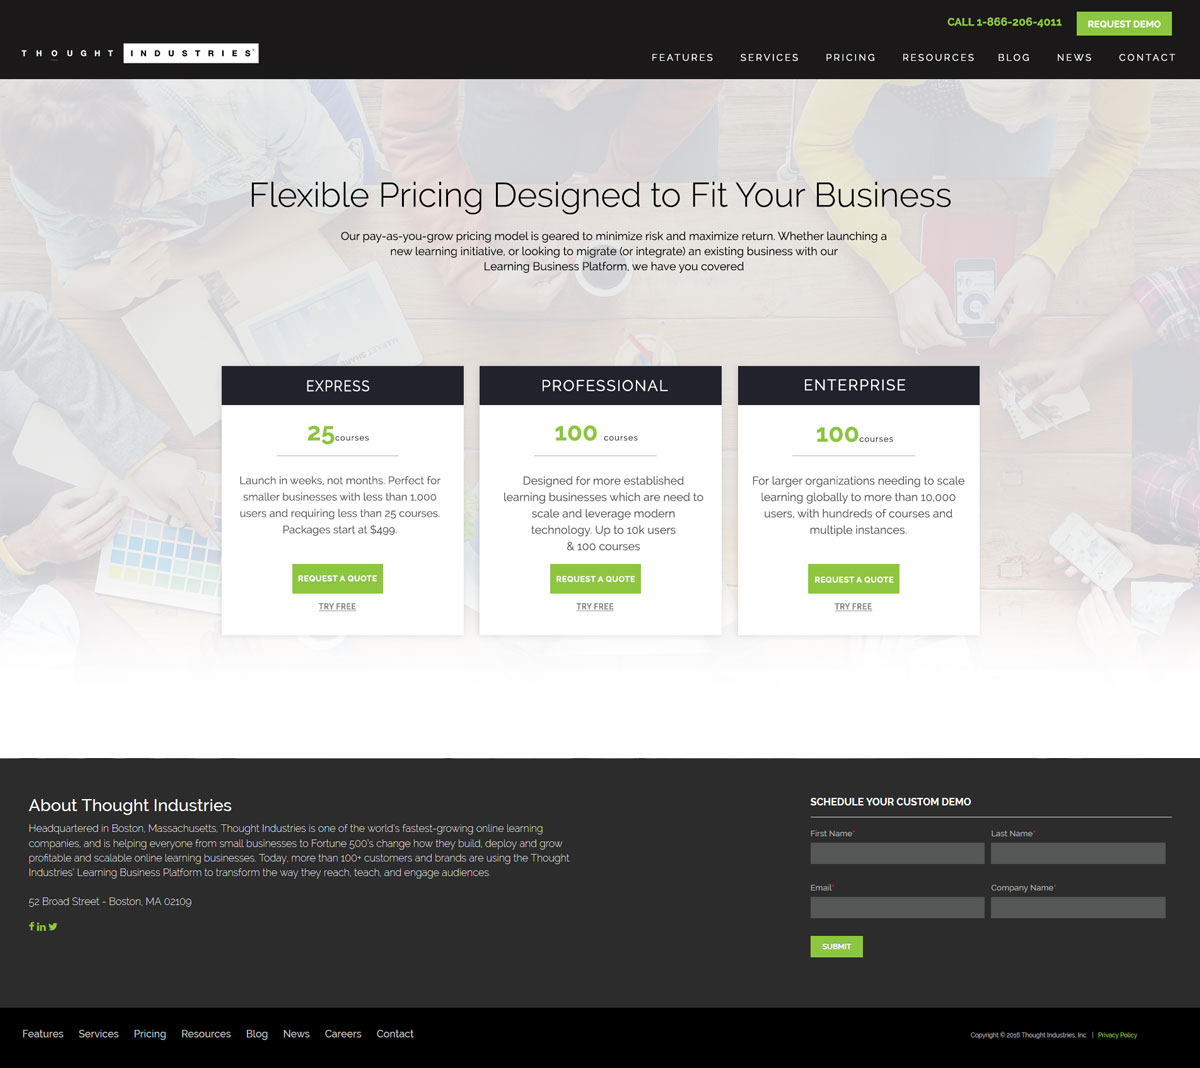 Modern Serious Pricing Web Design For Thought Industries By Kreative Fingers Design 13038060